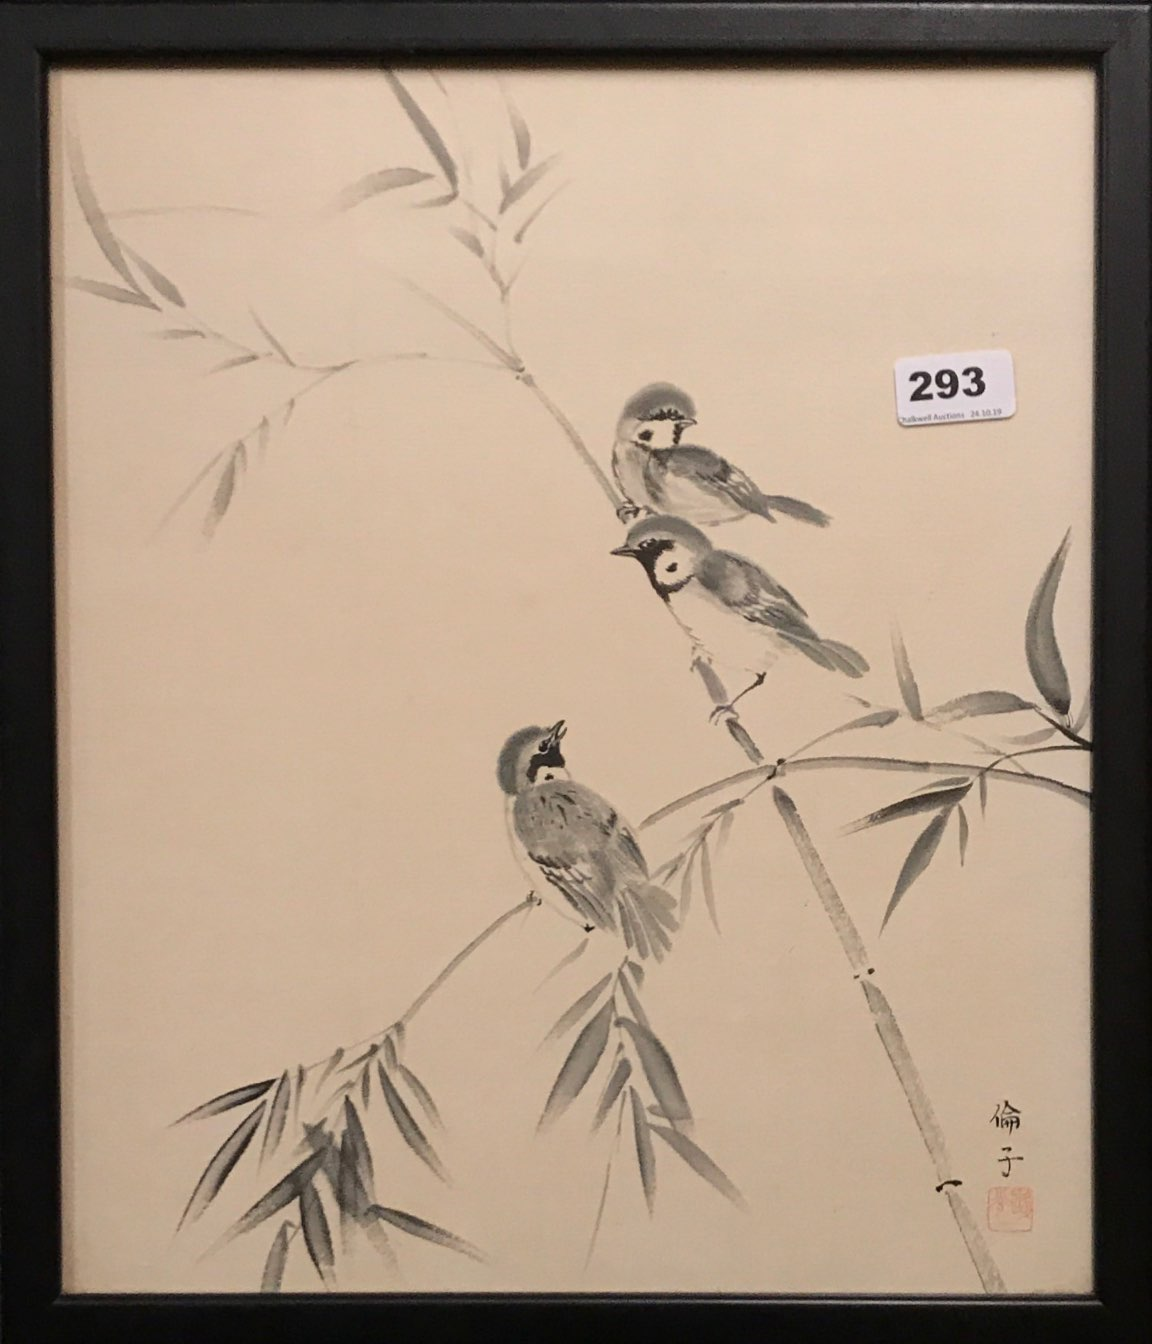 Lot 293 - A framed Chinese signed monochrome ink painting of three birds on a stem of bamboo, frame 38 x